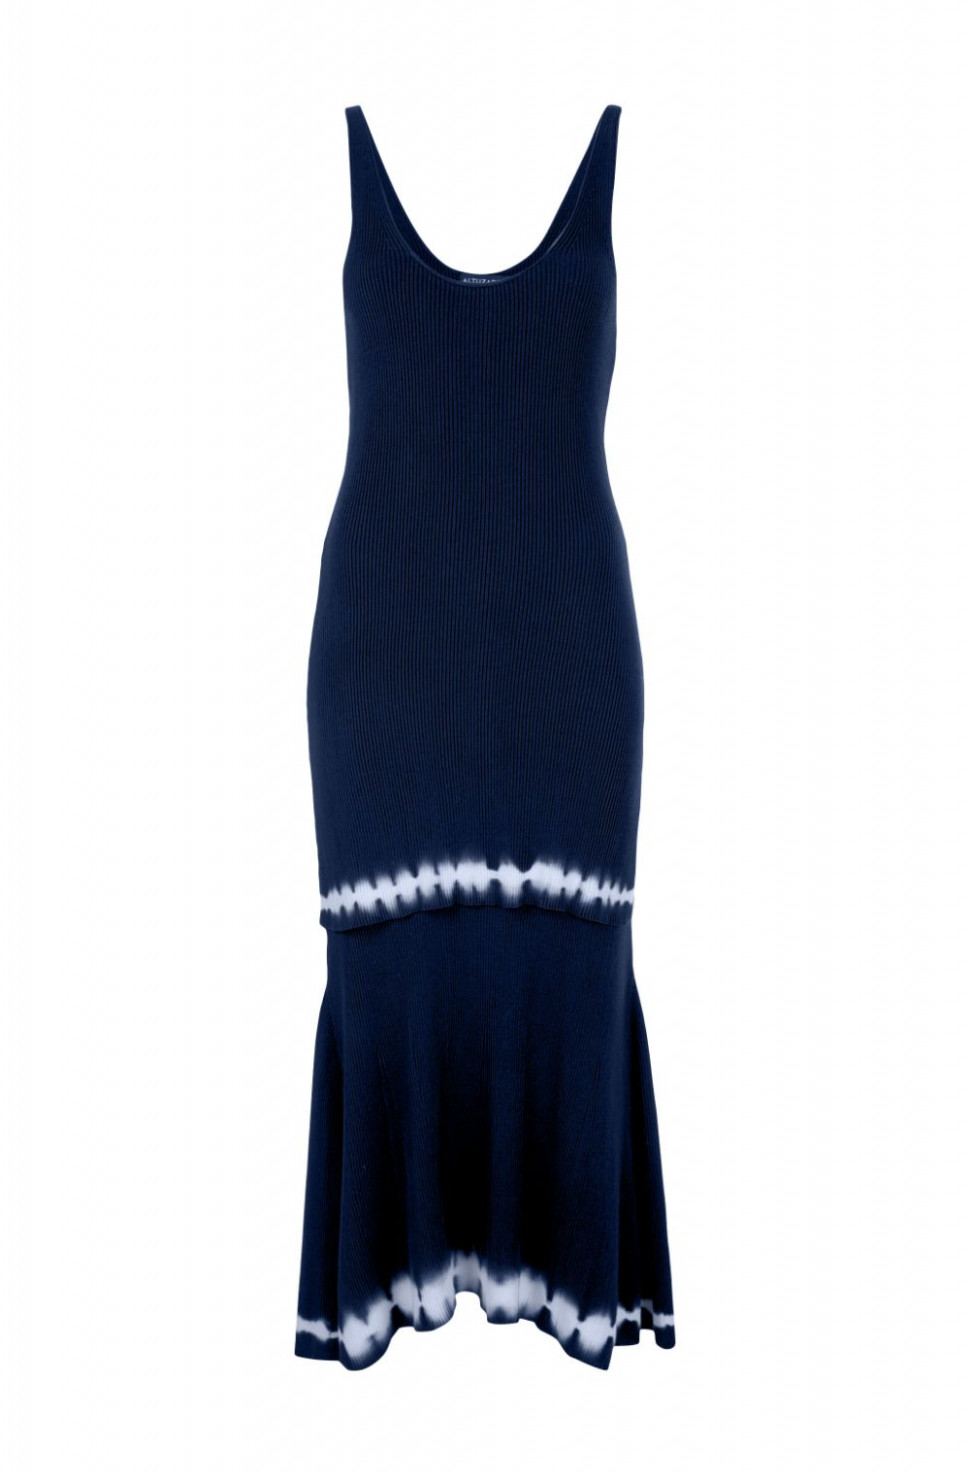 'Shinobu' Strickkleid in blau  Altuzarra Official Site